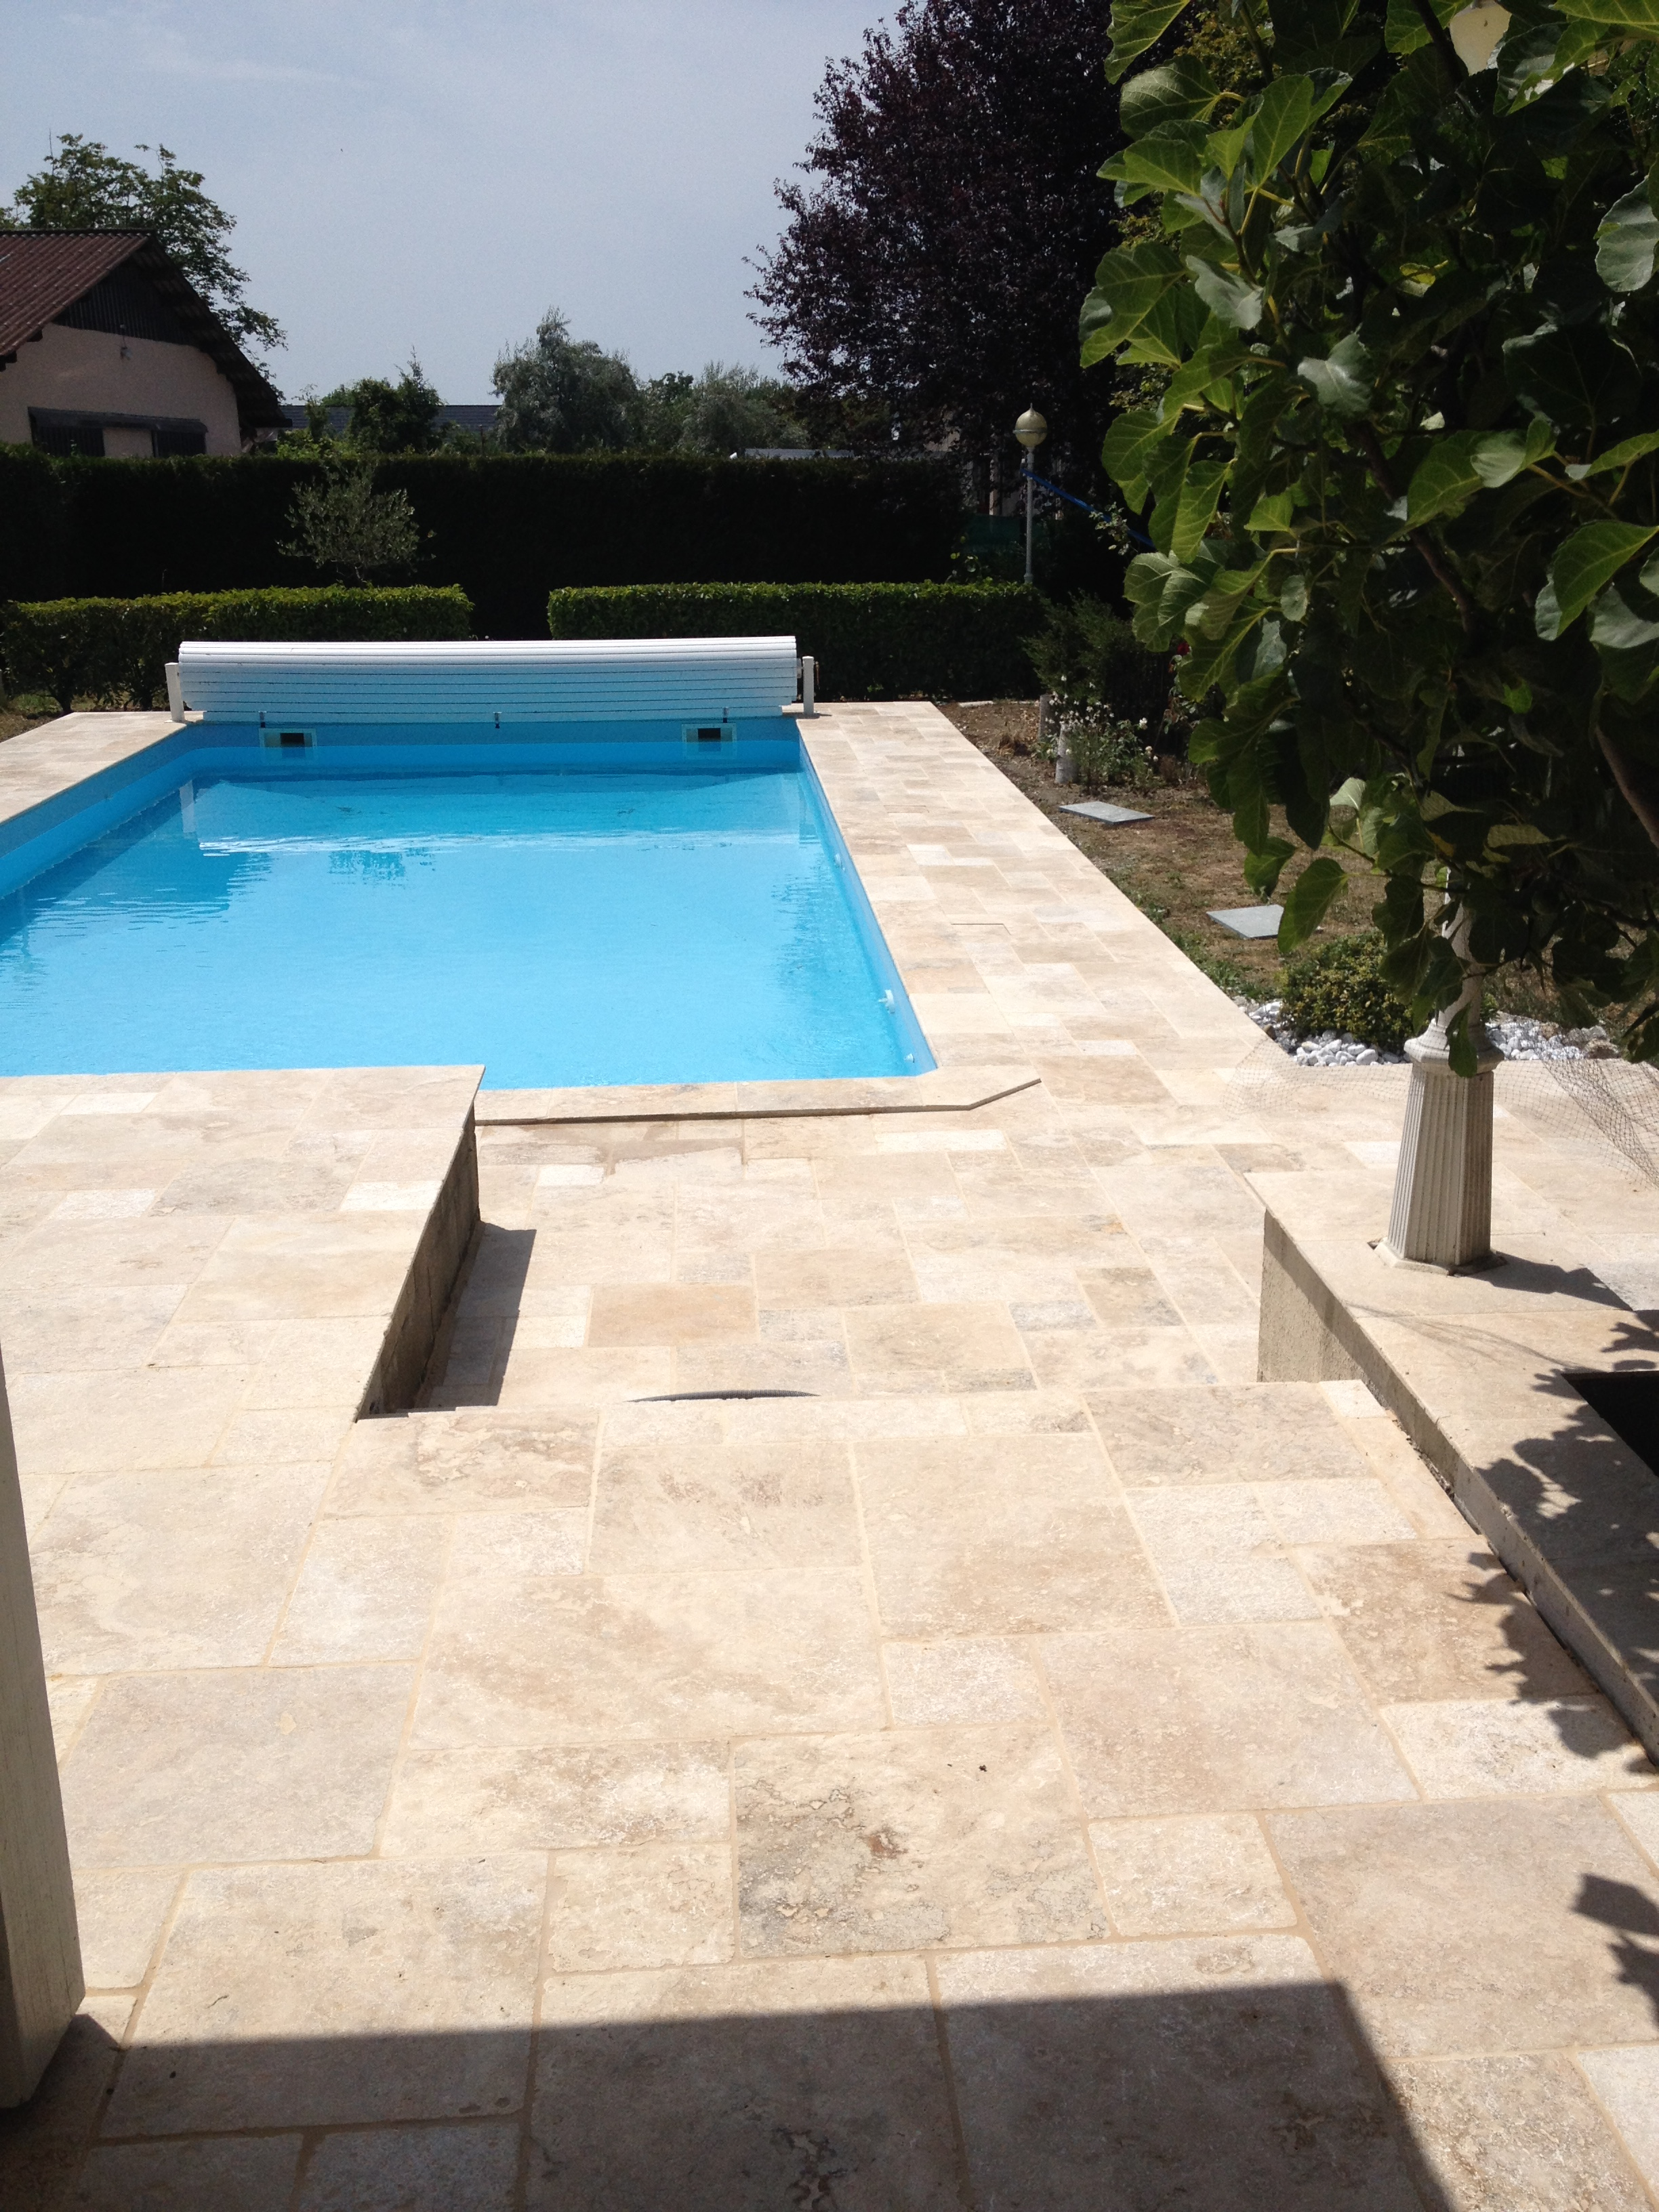 Carrelage piscine great carrelage piscine with carrelage for Carrelage pour piscine